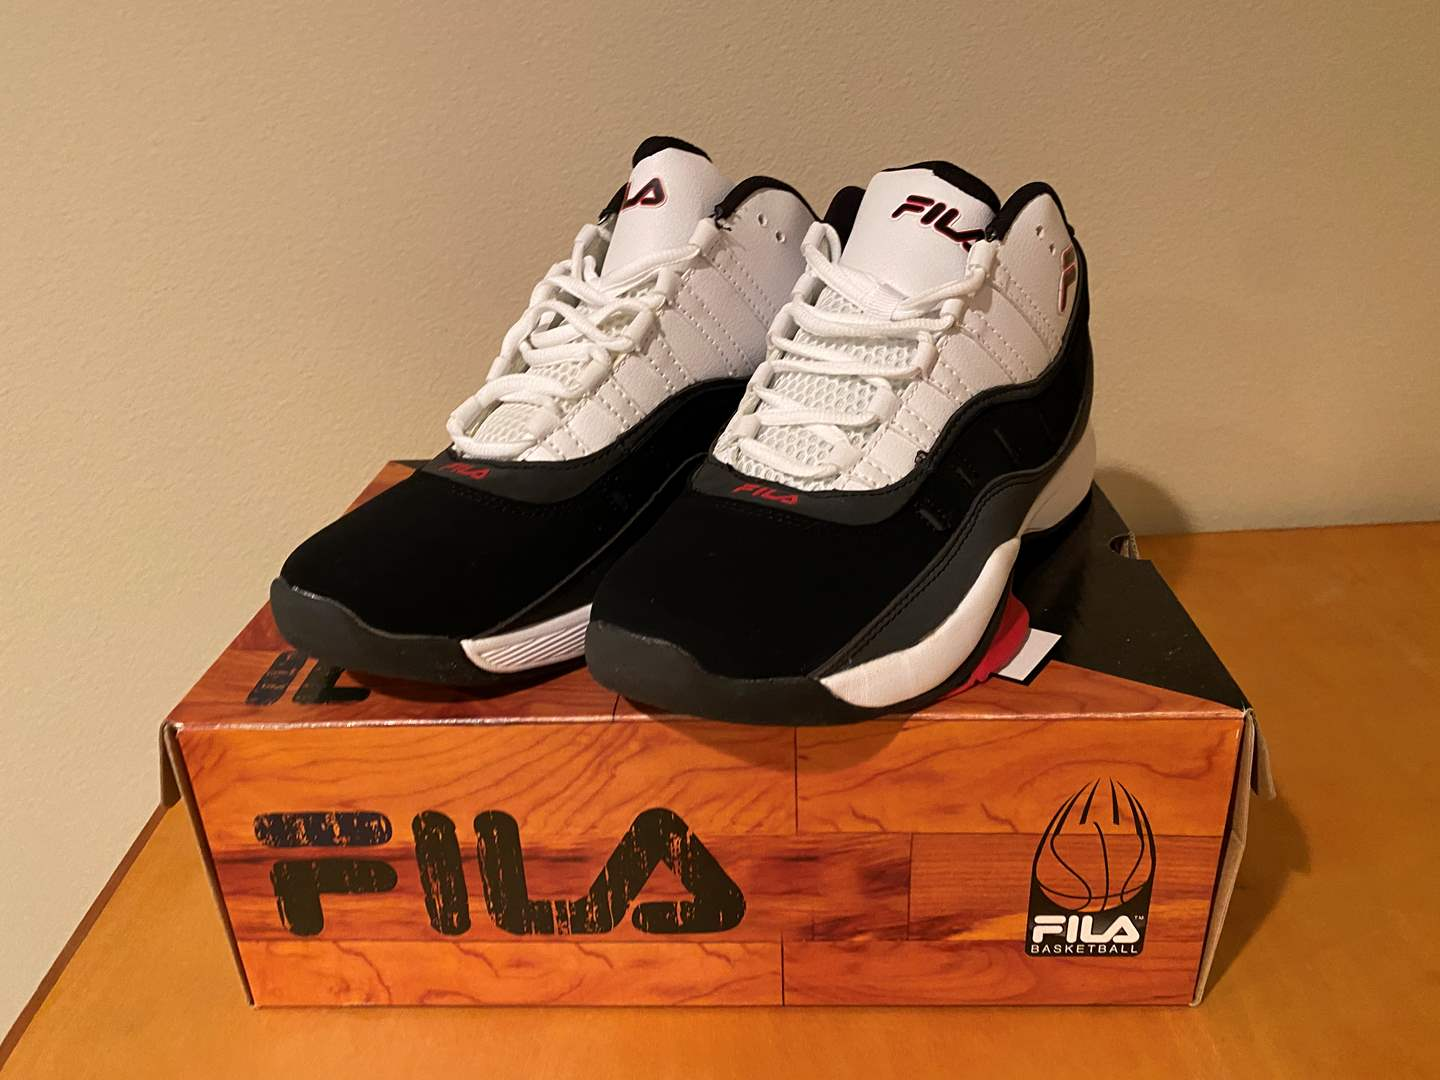 Lot # 145 - New in Box Men's Fila Basketball Shoes - (Size 10) (main image)